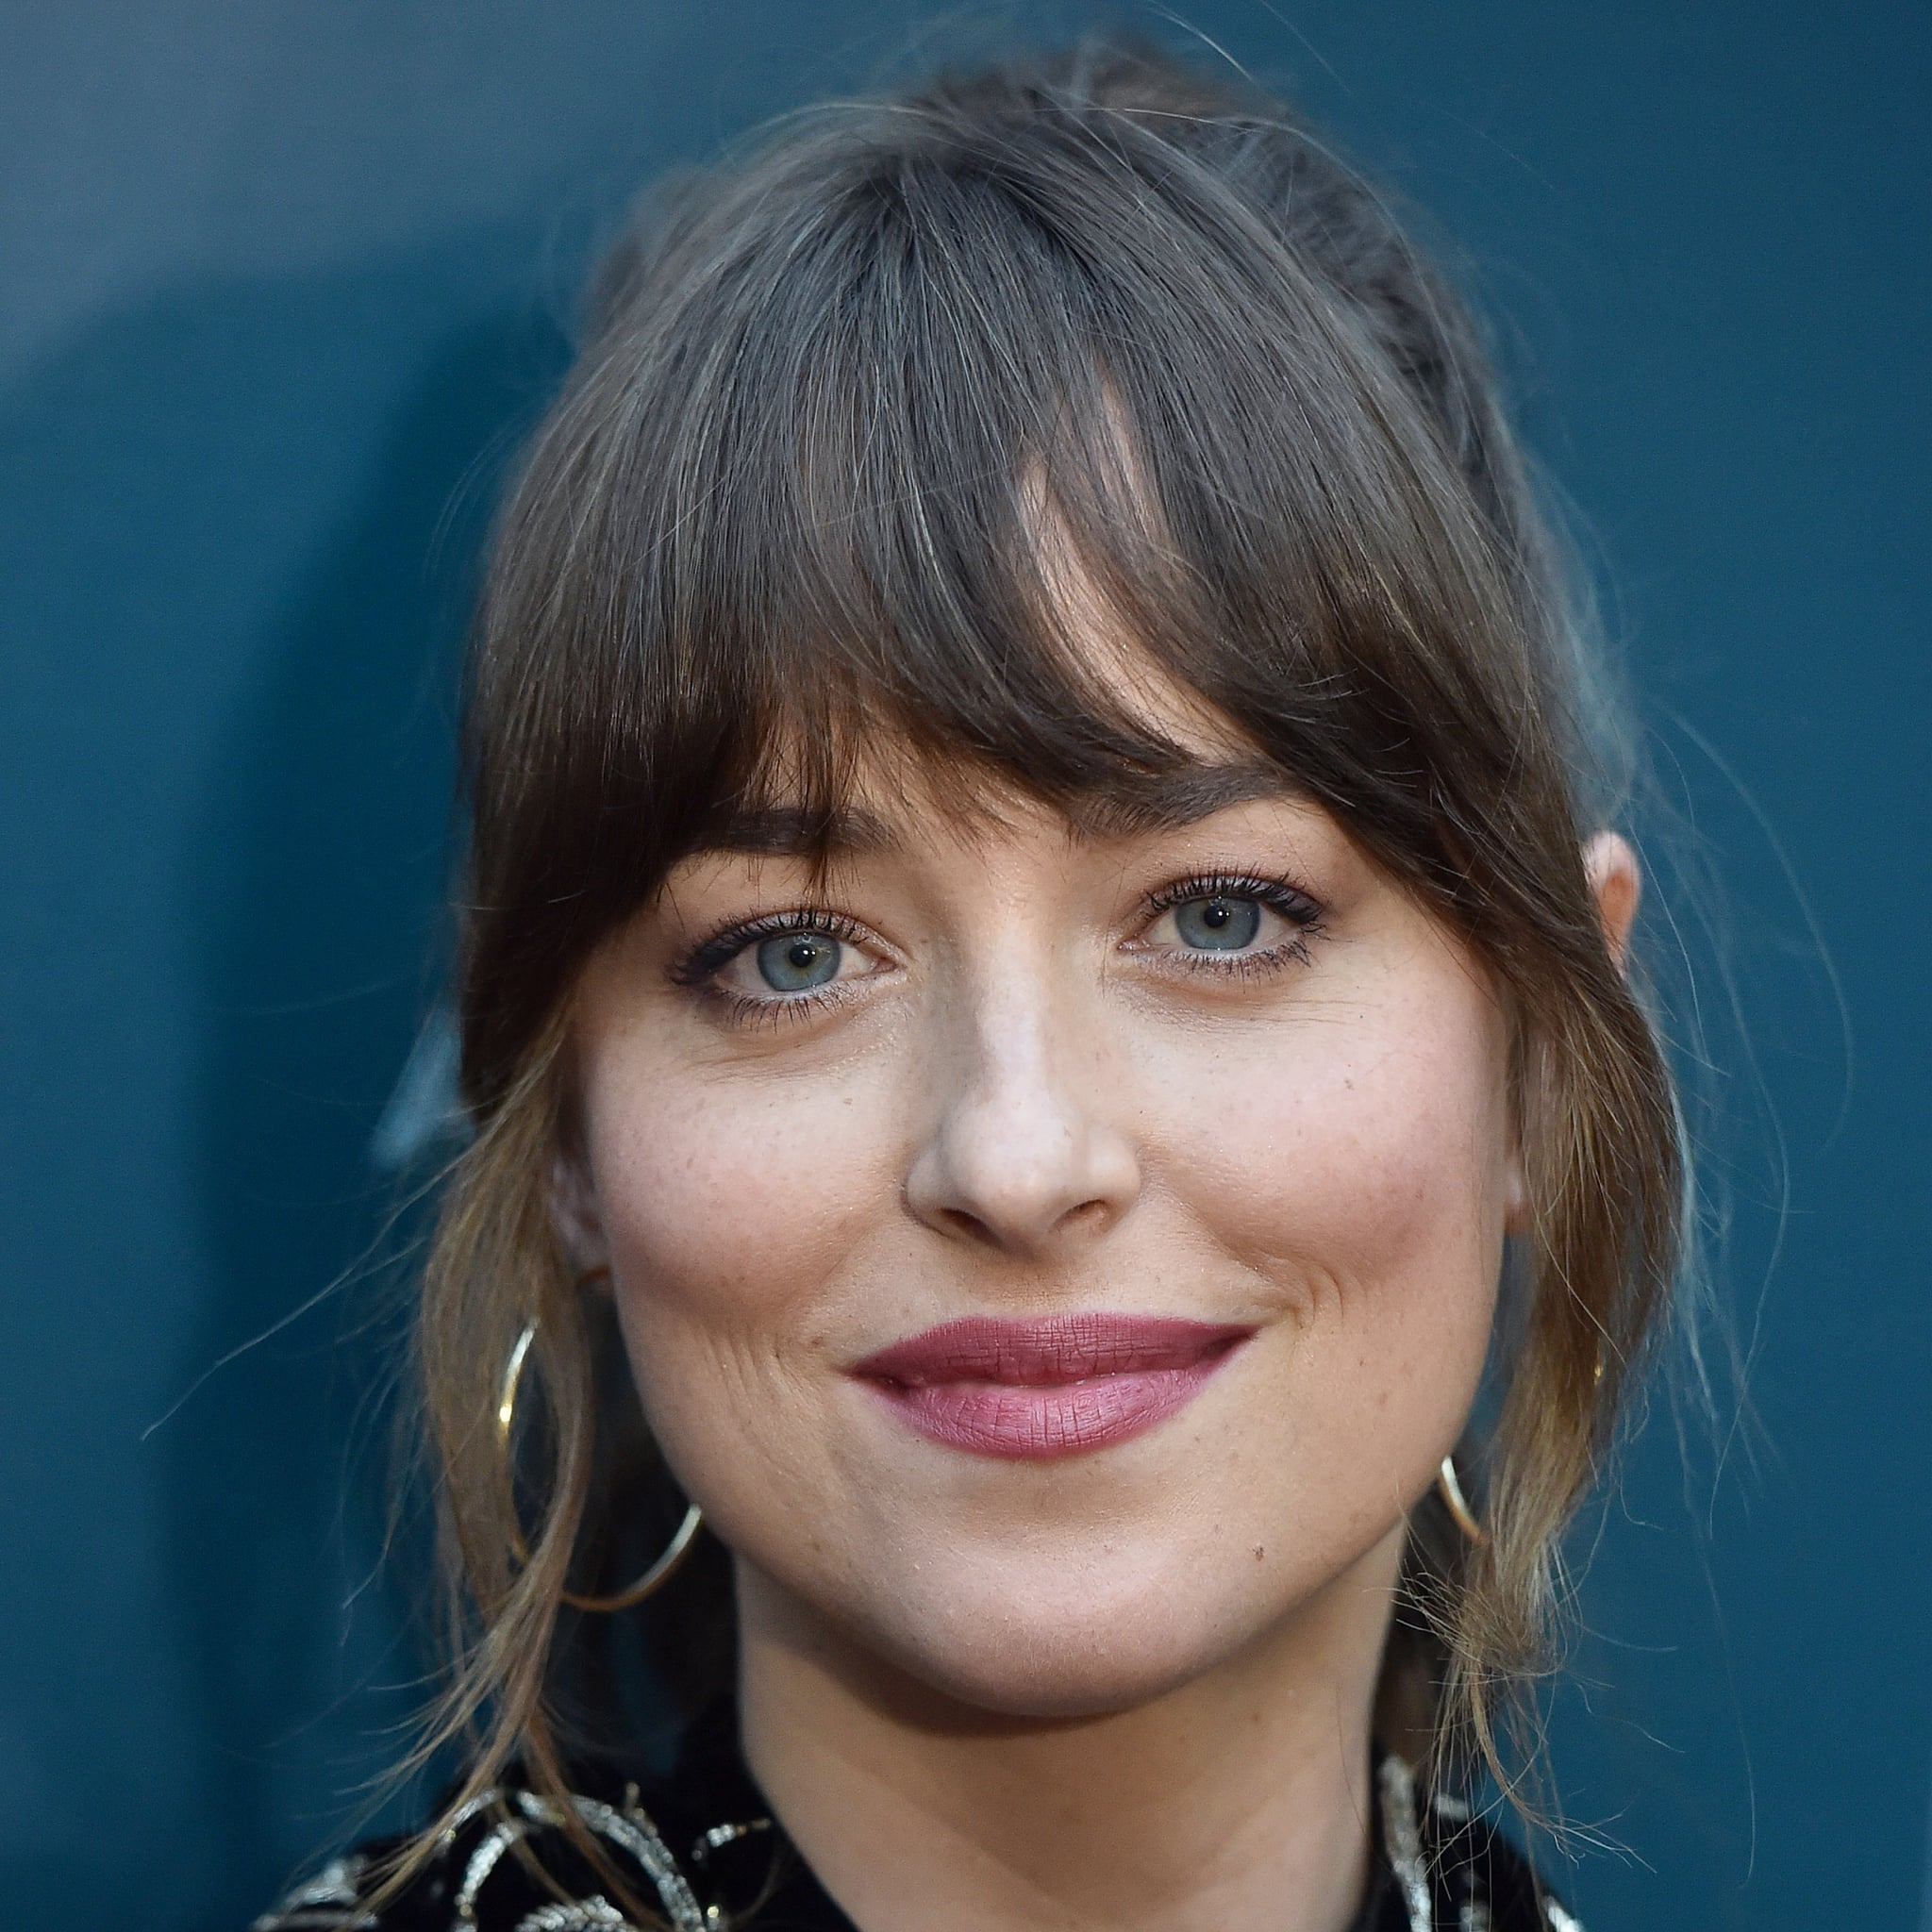 Here is Why Others Think Dakota Johnson Came Out as Bisexual